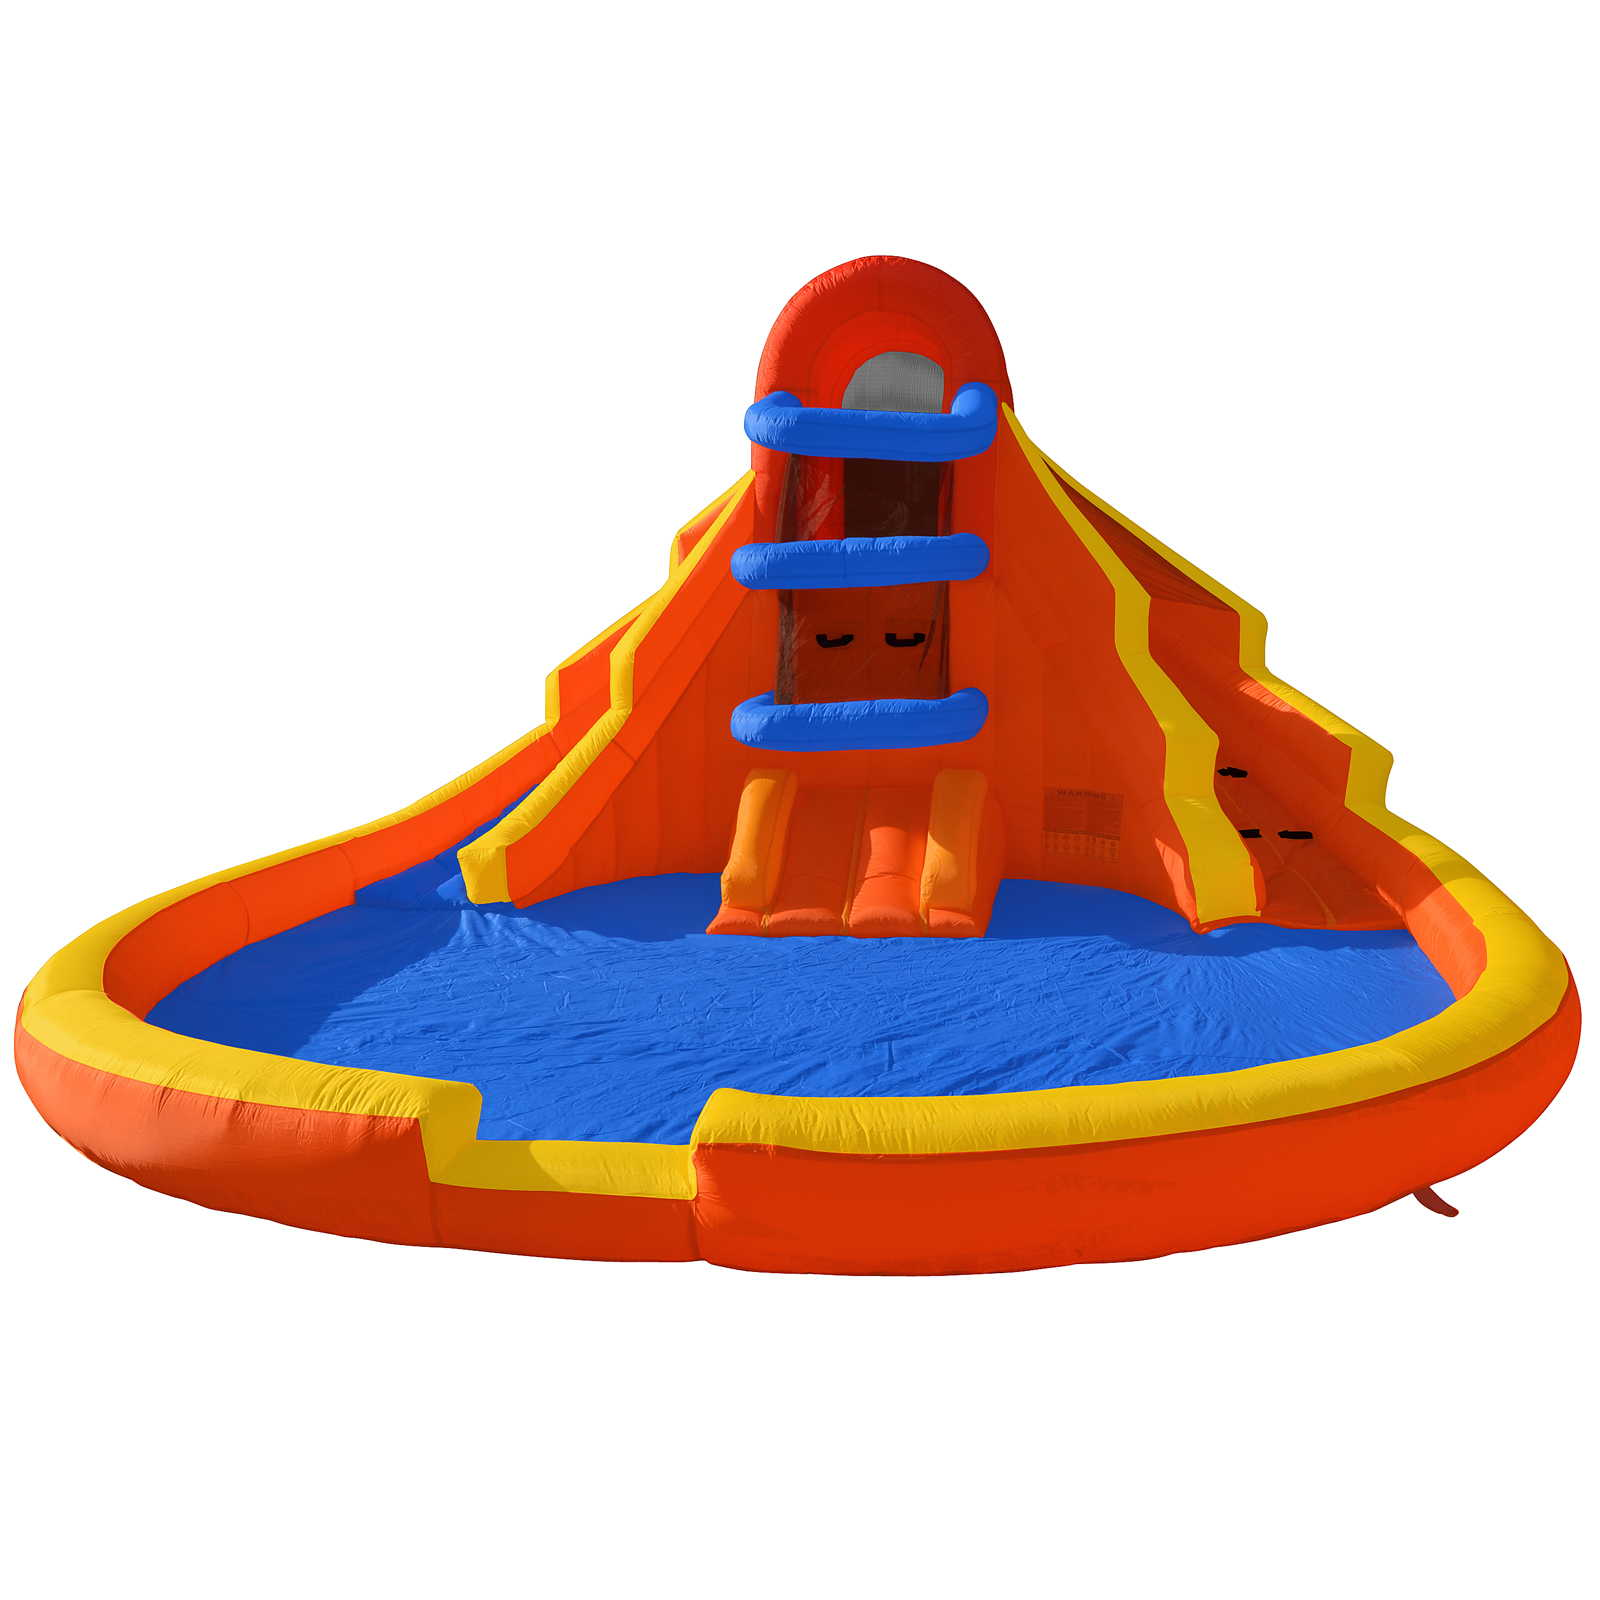 Kids Pools With Slides kids' water slide